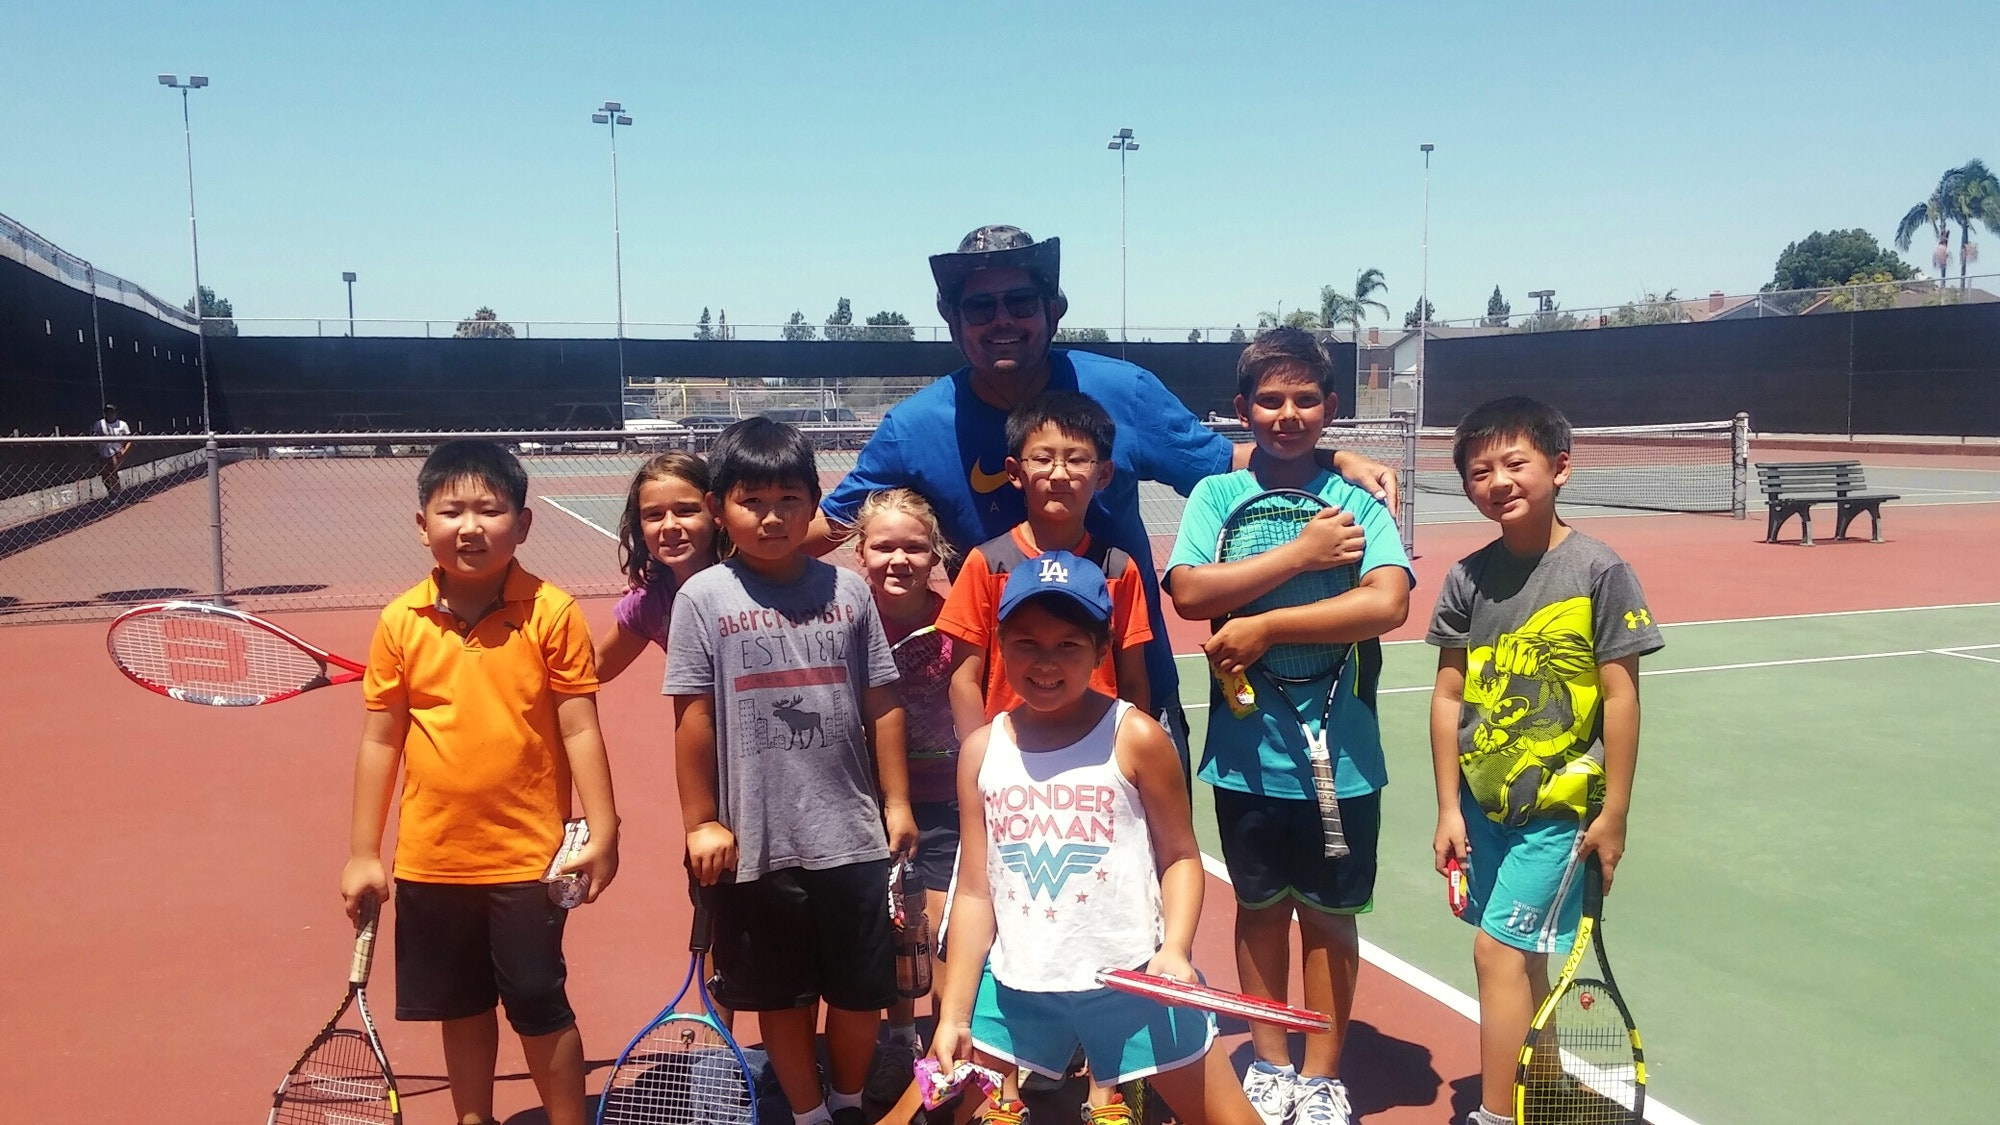 Peter T. teaches tennis lessons in Diamond Bar, CA